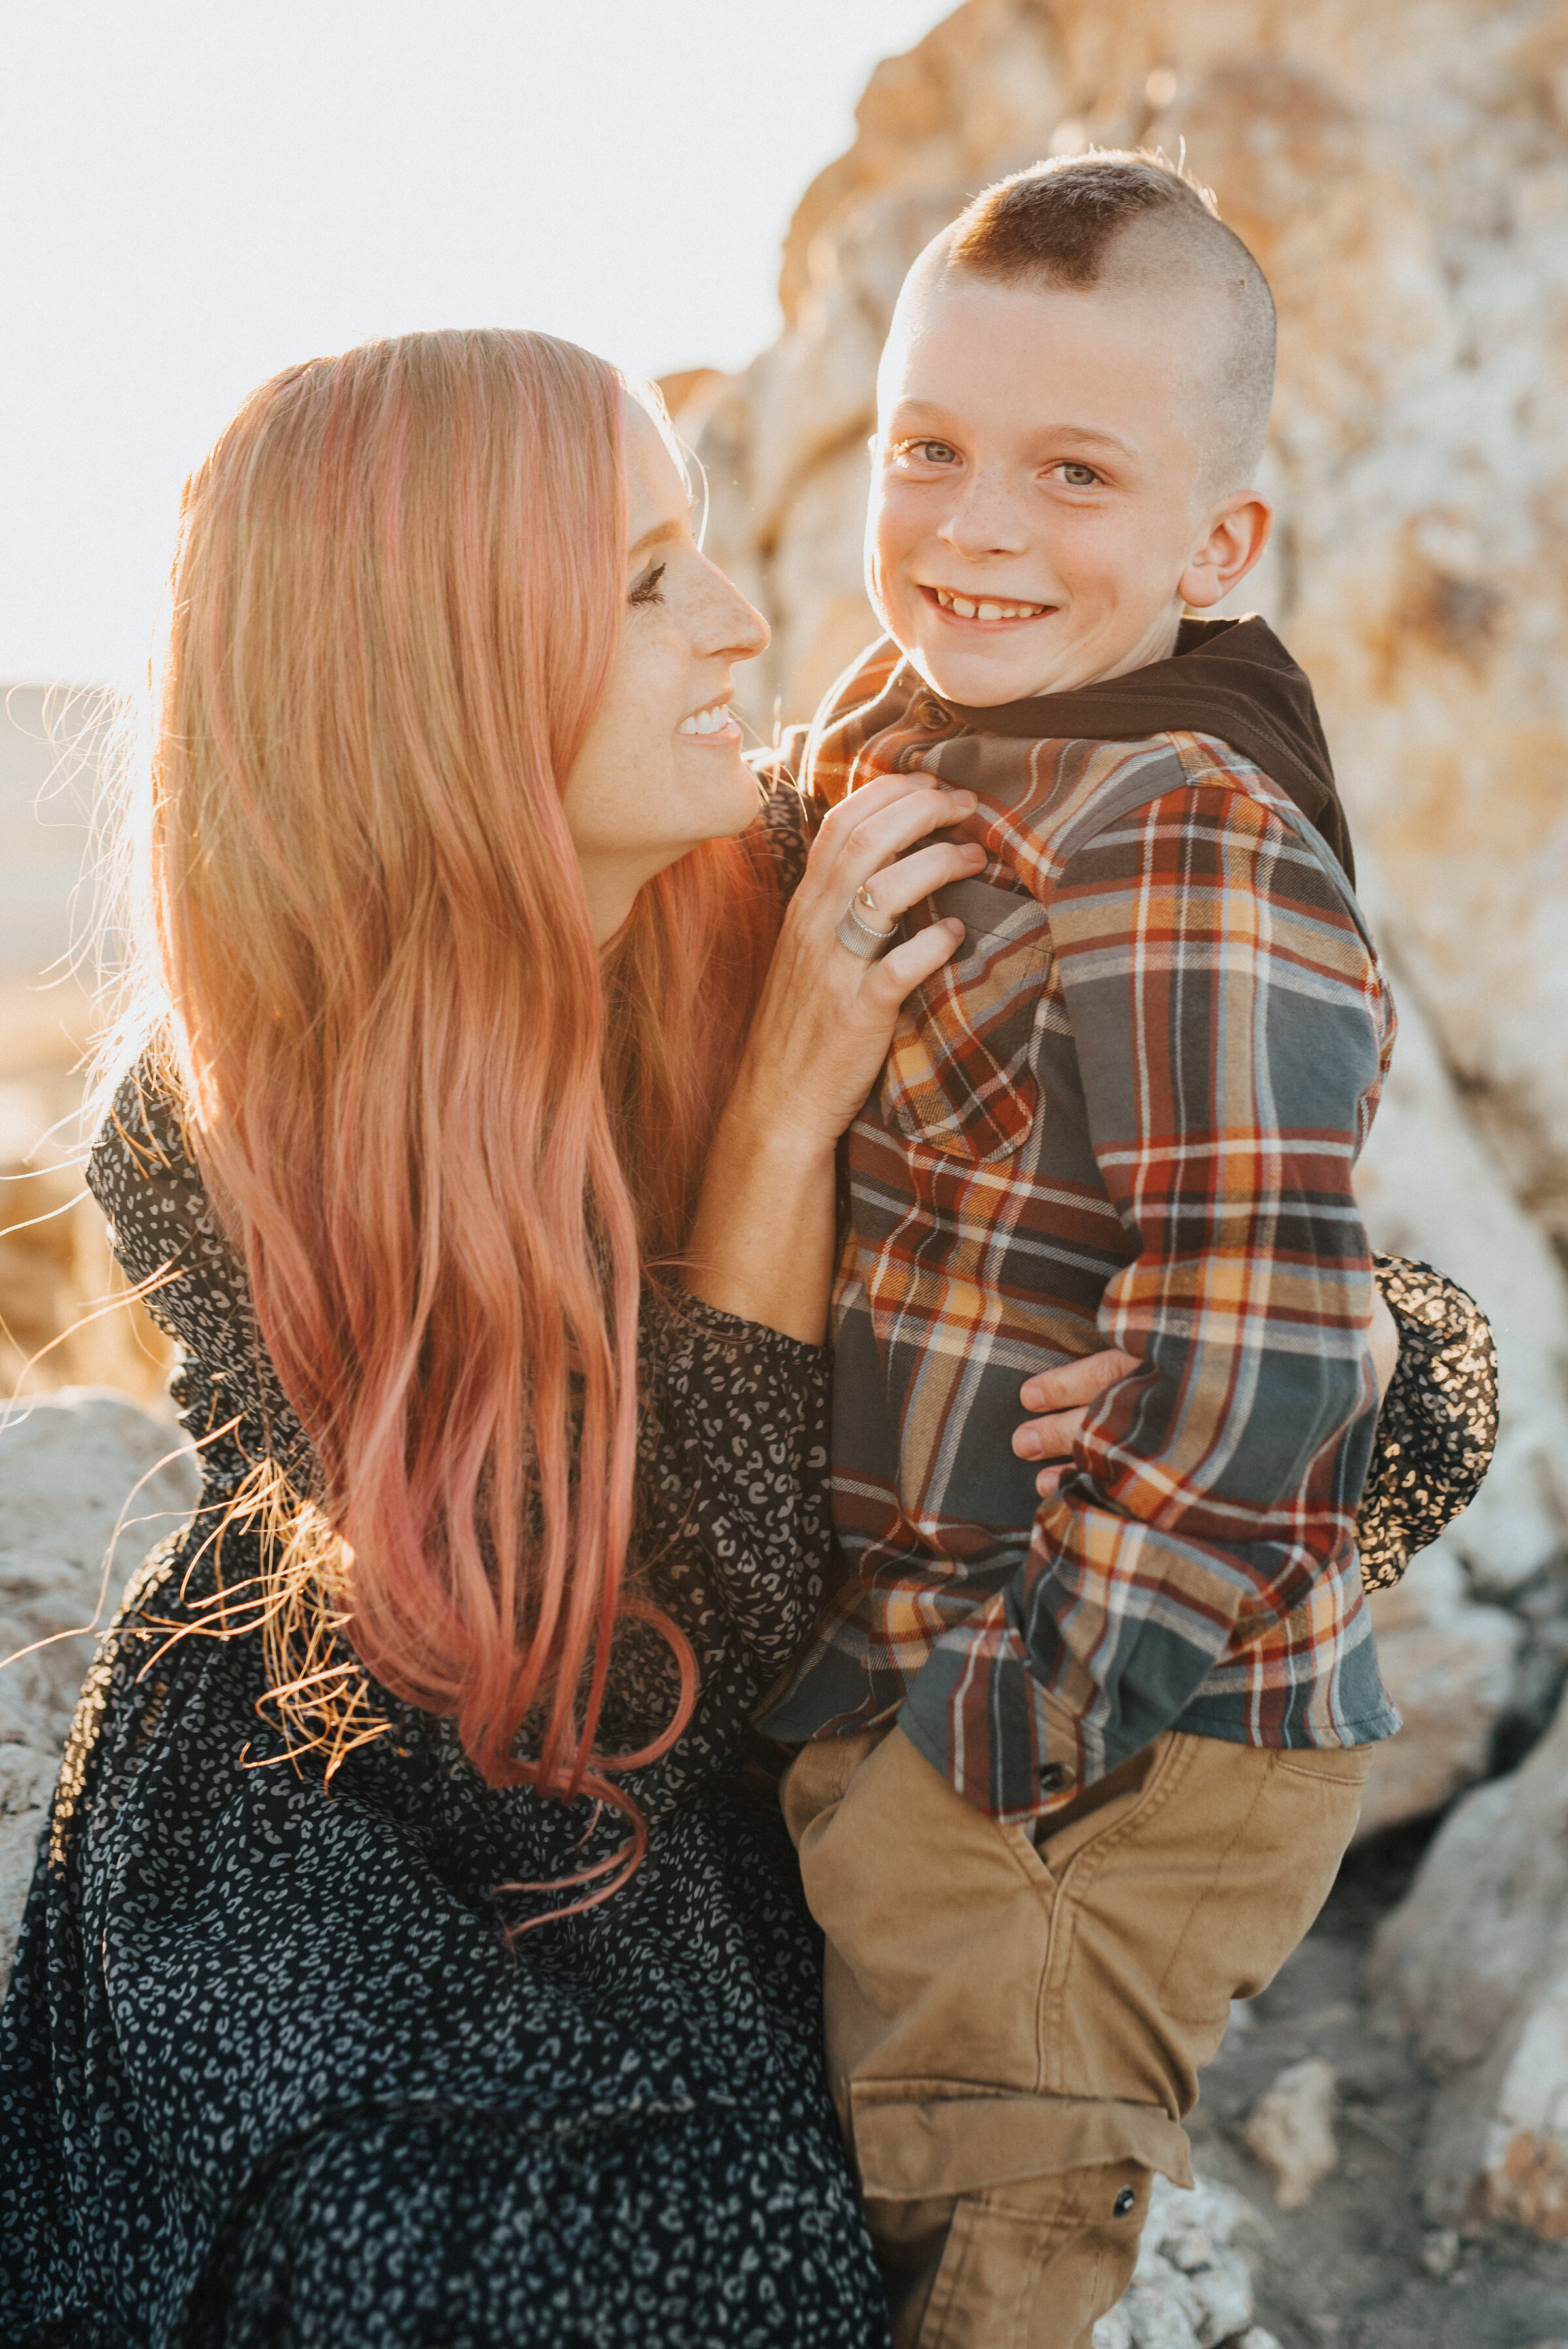 Adorable mother and son pose at Antelope Island by Salt Lake City family photographer Kristi Alyse Photography. Salt lake city family photographer family portraits outfit inspiration pink hair son mohawk plaid family outfits for family pics antelope island mother son family portraits pose professional family photographer #familypictures #utahphotographer #antelopeisland #outfitinspo #familypics #familyphotographer #pinkhair #saltlakecityphotog #slcfamilypictures